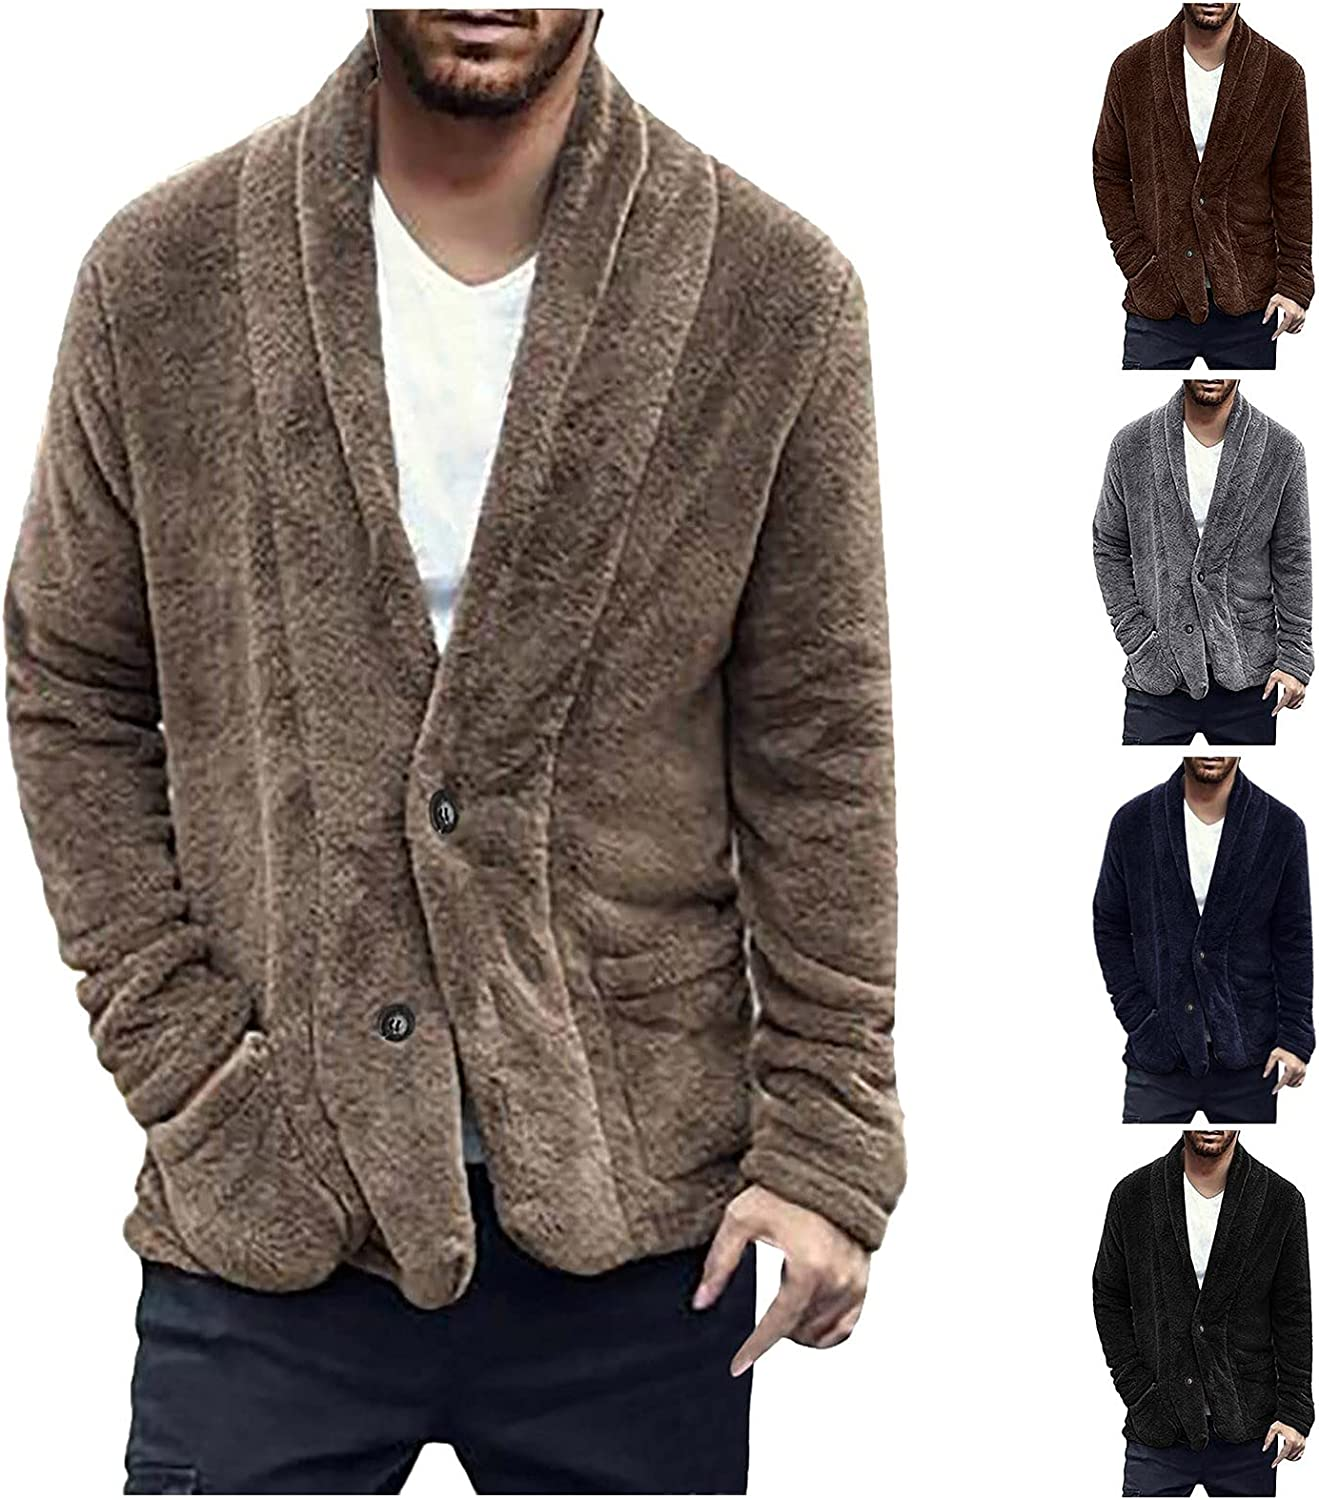 Huangse Men's Winter Two Side Polar Fleece Jacket with Pocket Button Down V Neck Cardigan Casual Loose Bathrobe Style Jacket